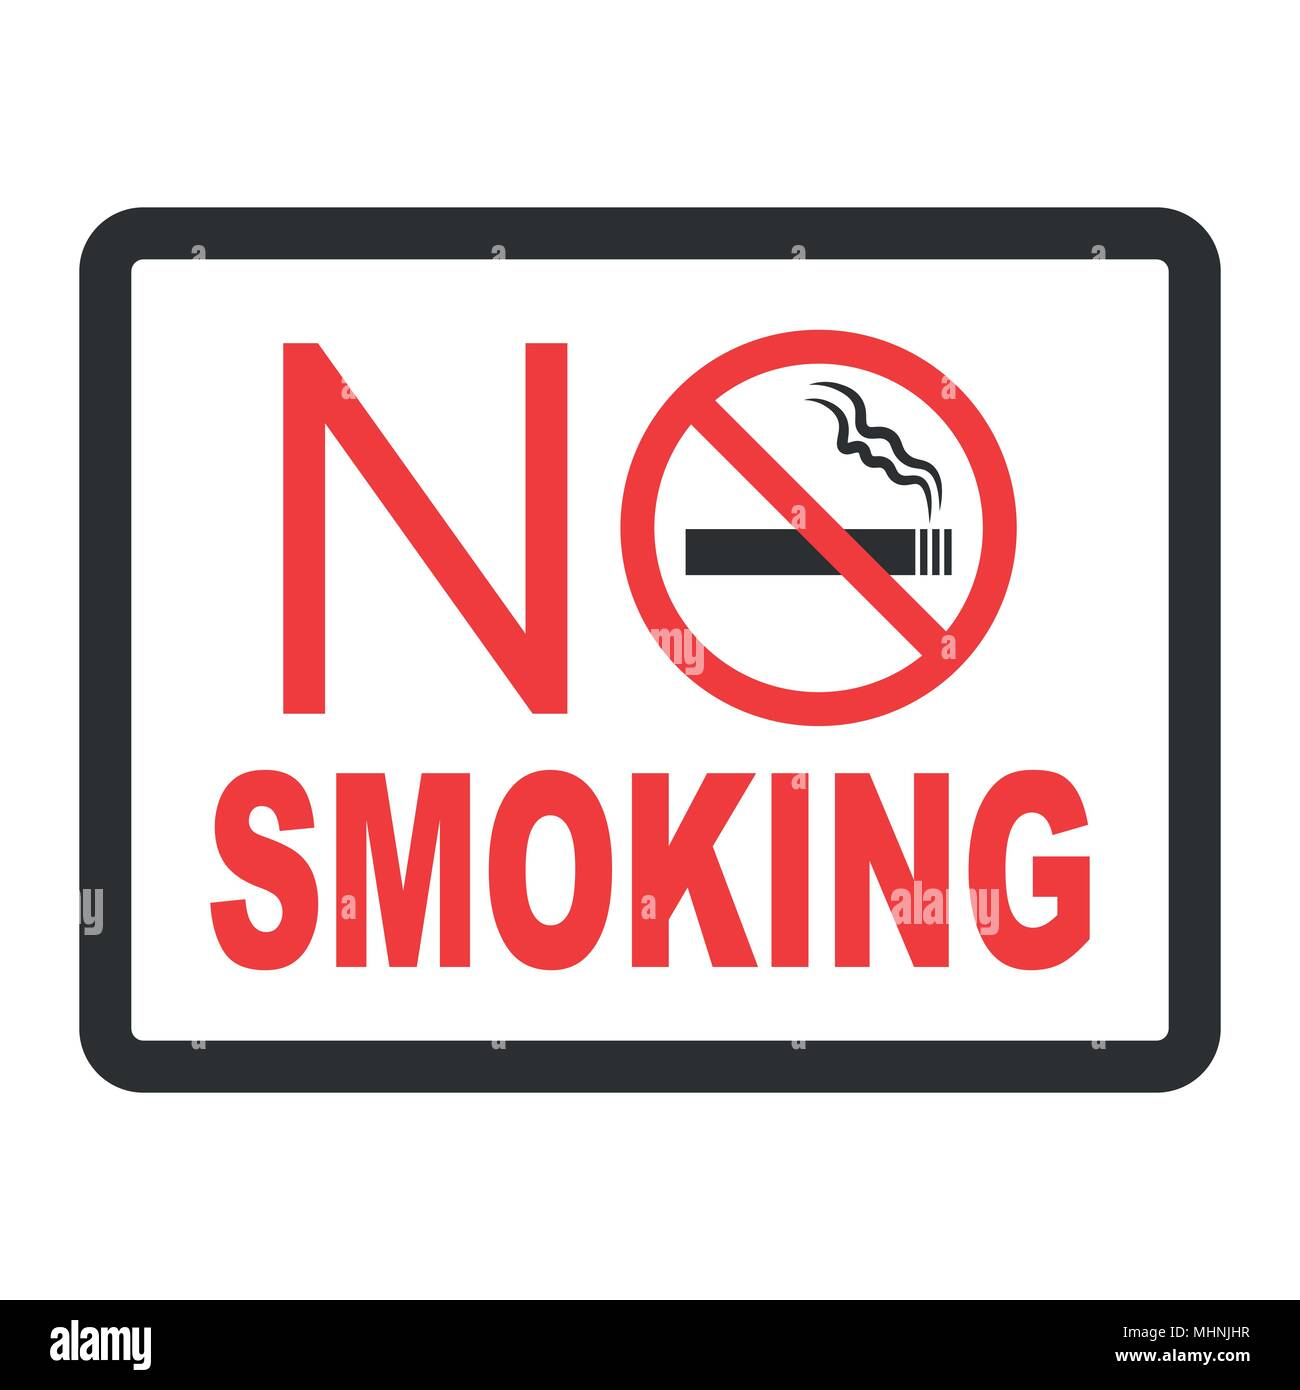 No smoking black color sign on white background - Stock Vector